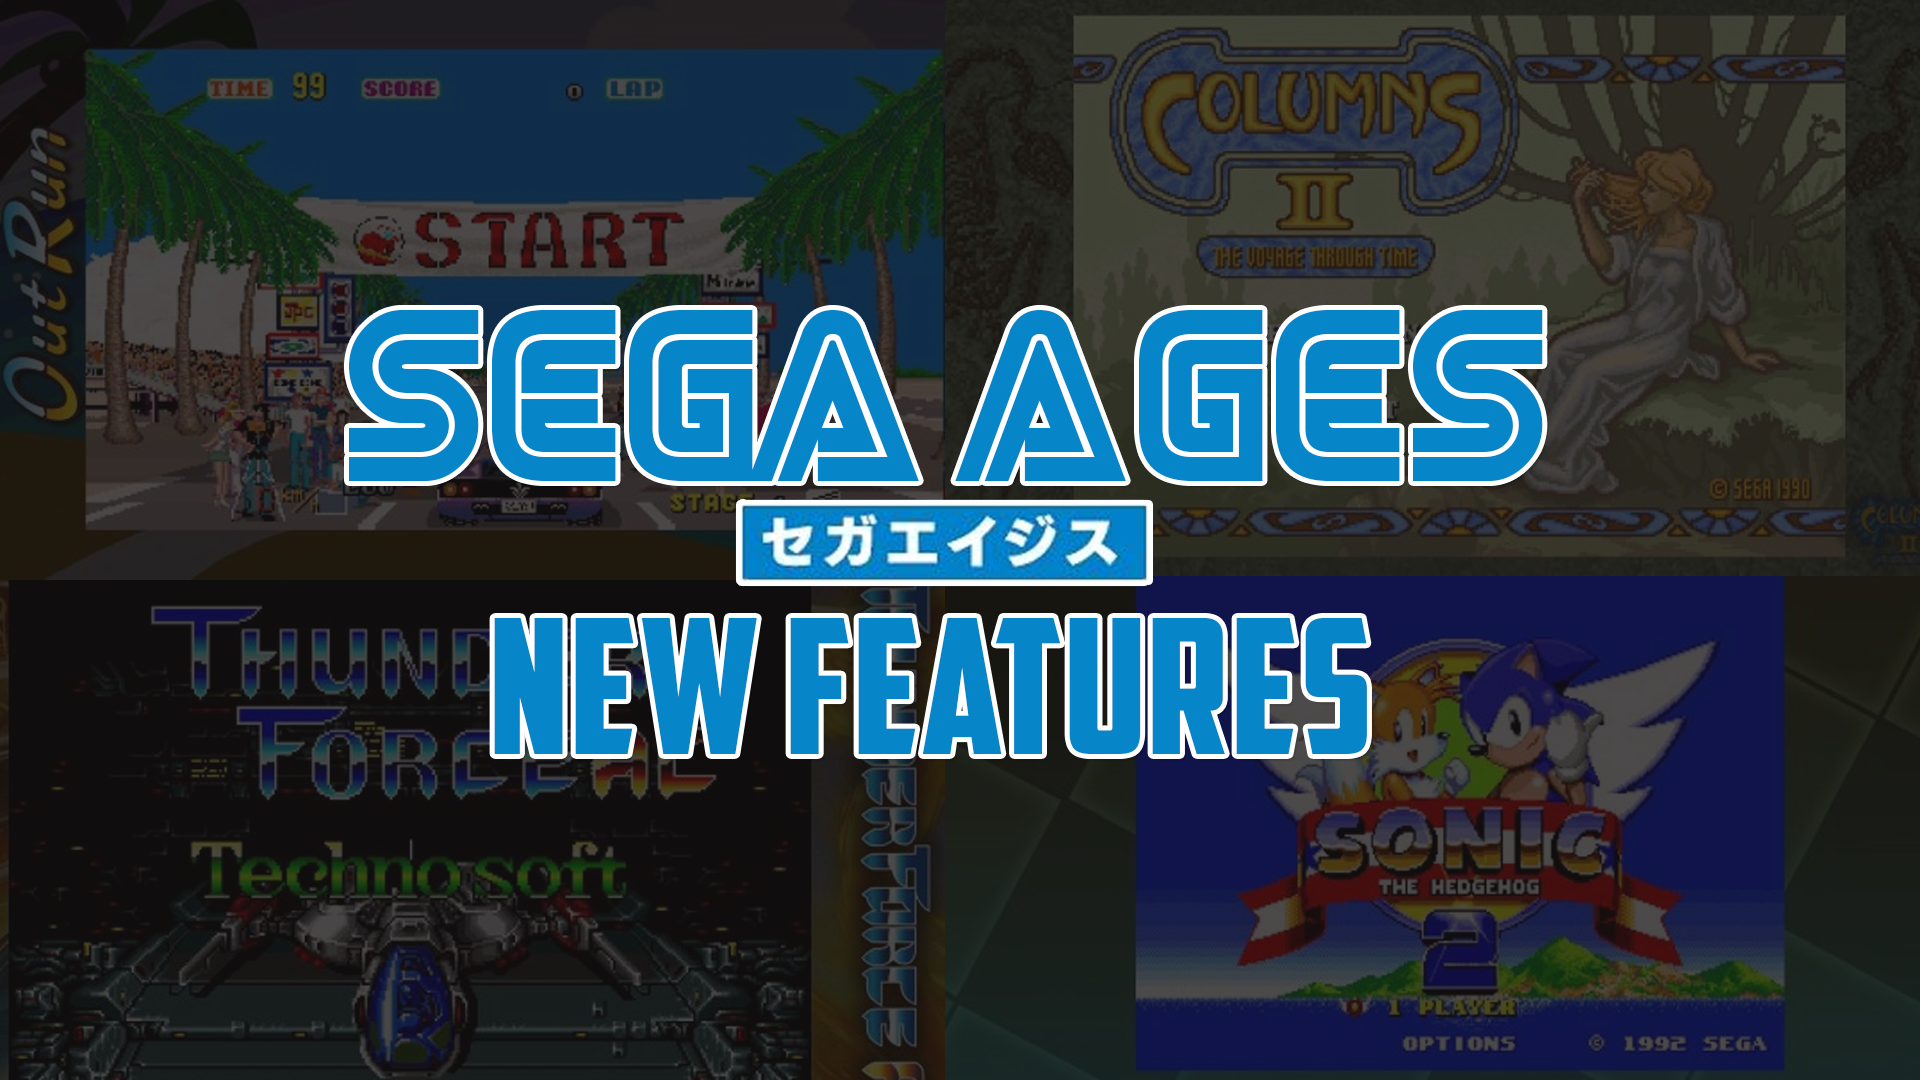 Nintendo Switch Sega Ages Out Run Columns Ii Thunder Force Ac And Sonic 2 New Content Detailed Segabits 1 Source For Sega News